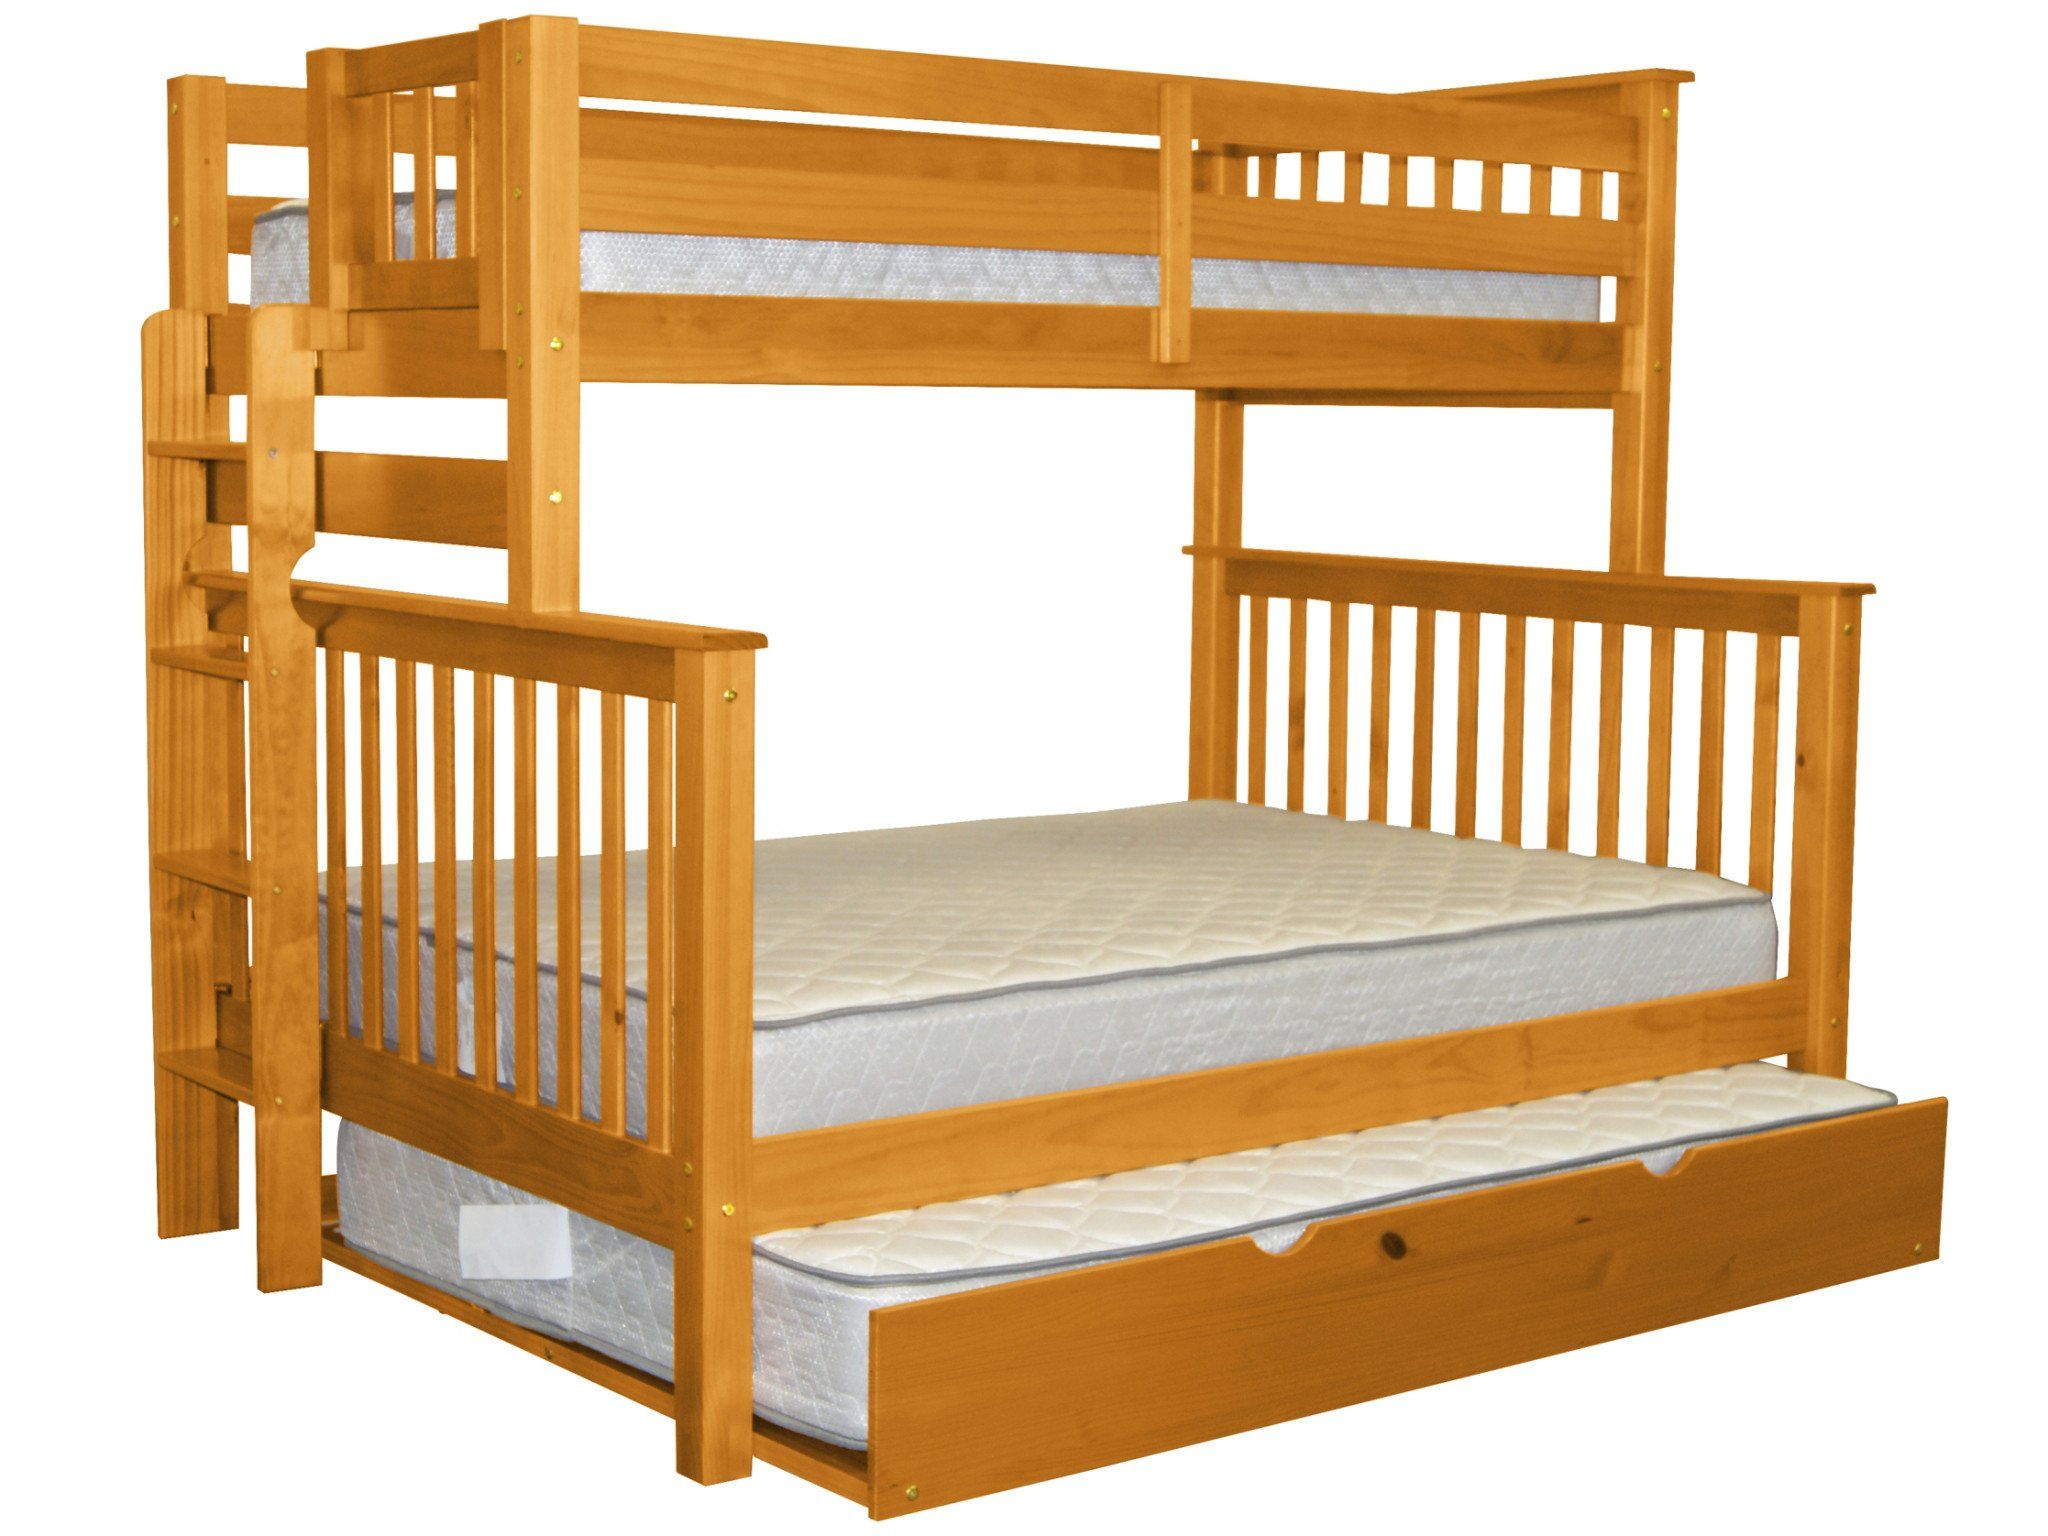 Loft bed twin over queen  Bedz King Mission Style Bunk Bed Twin over Full with End Ladder and